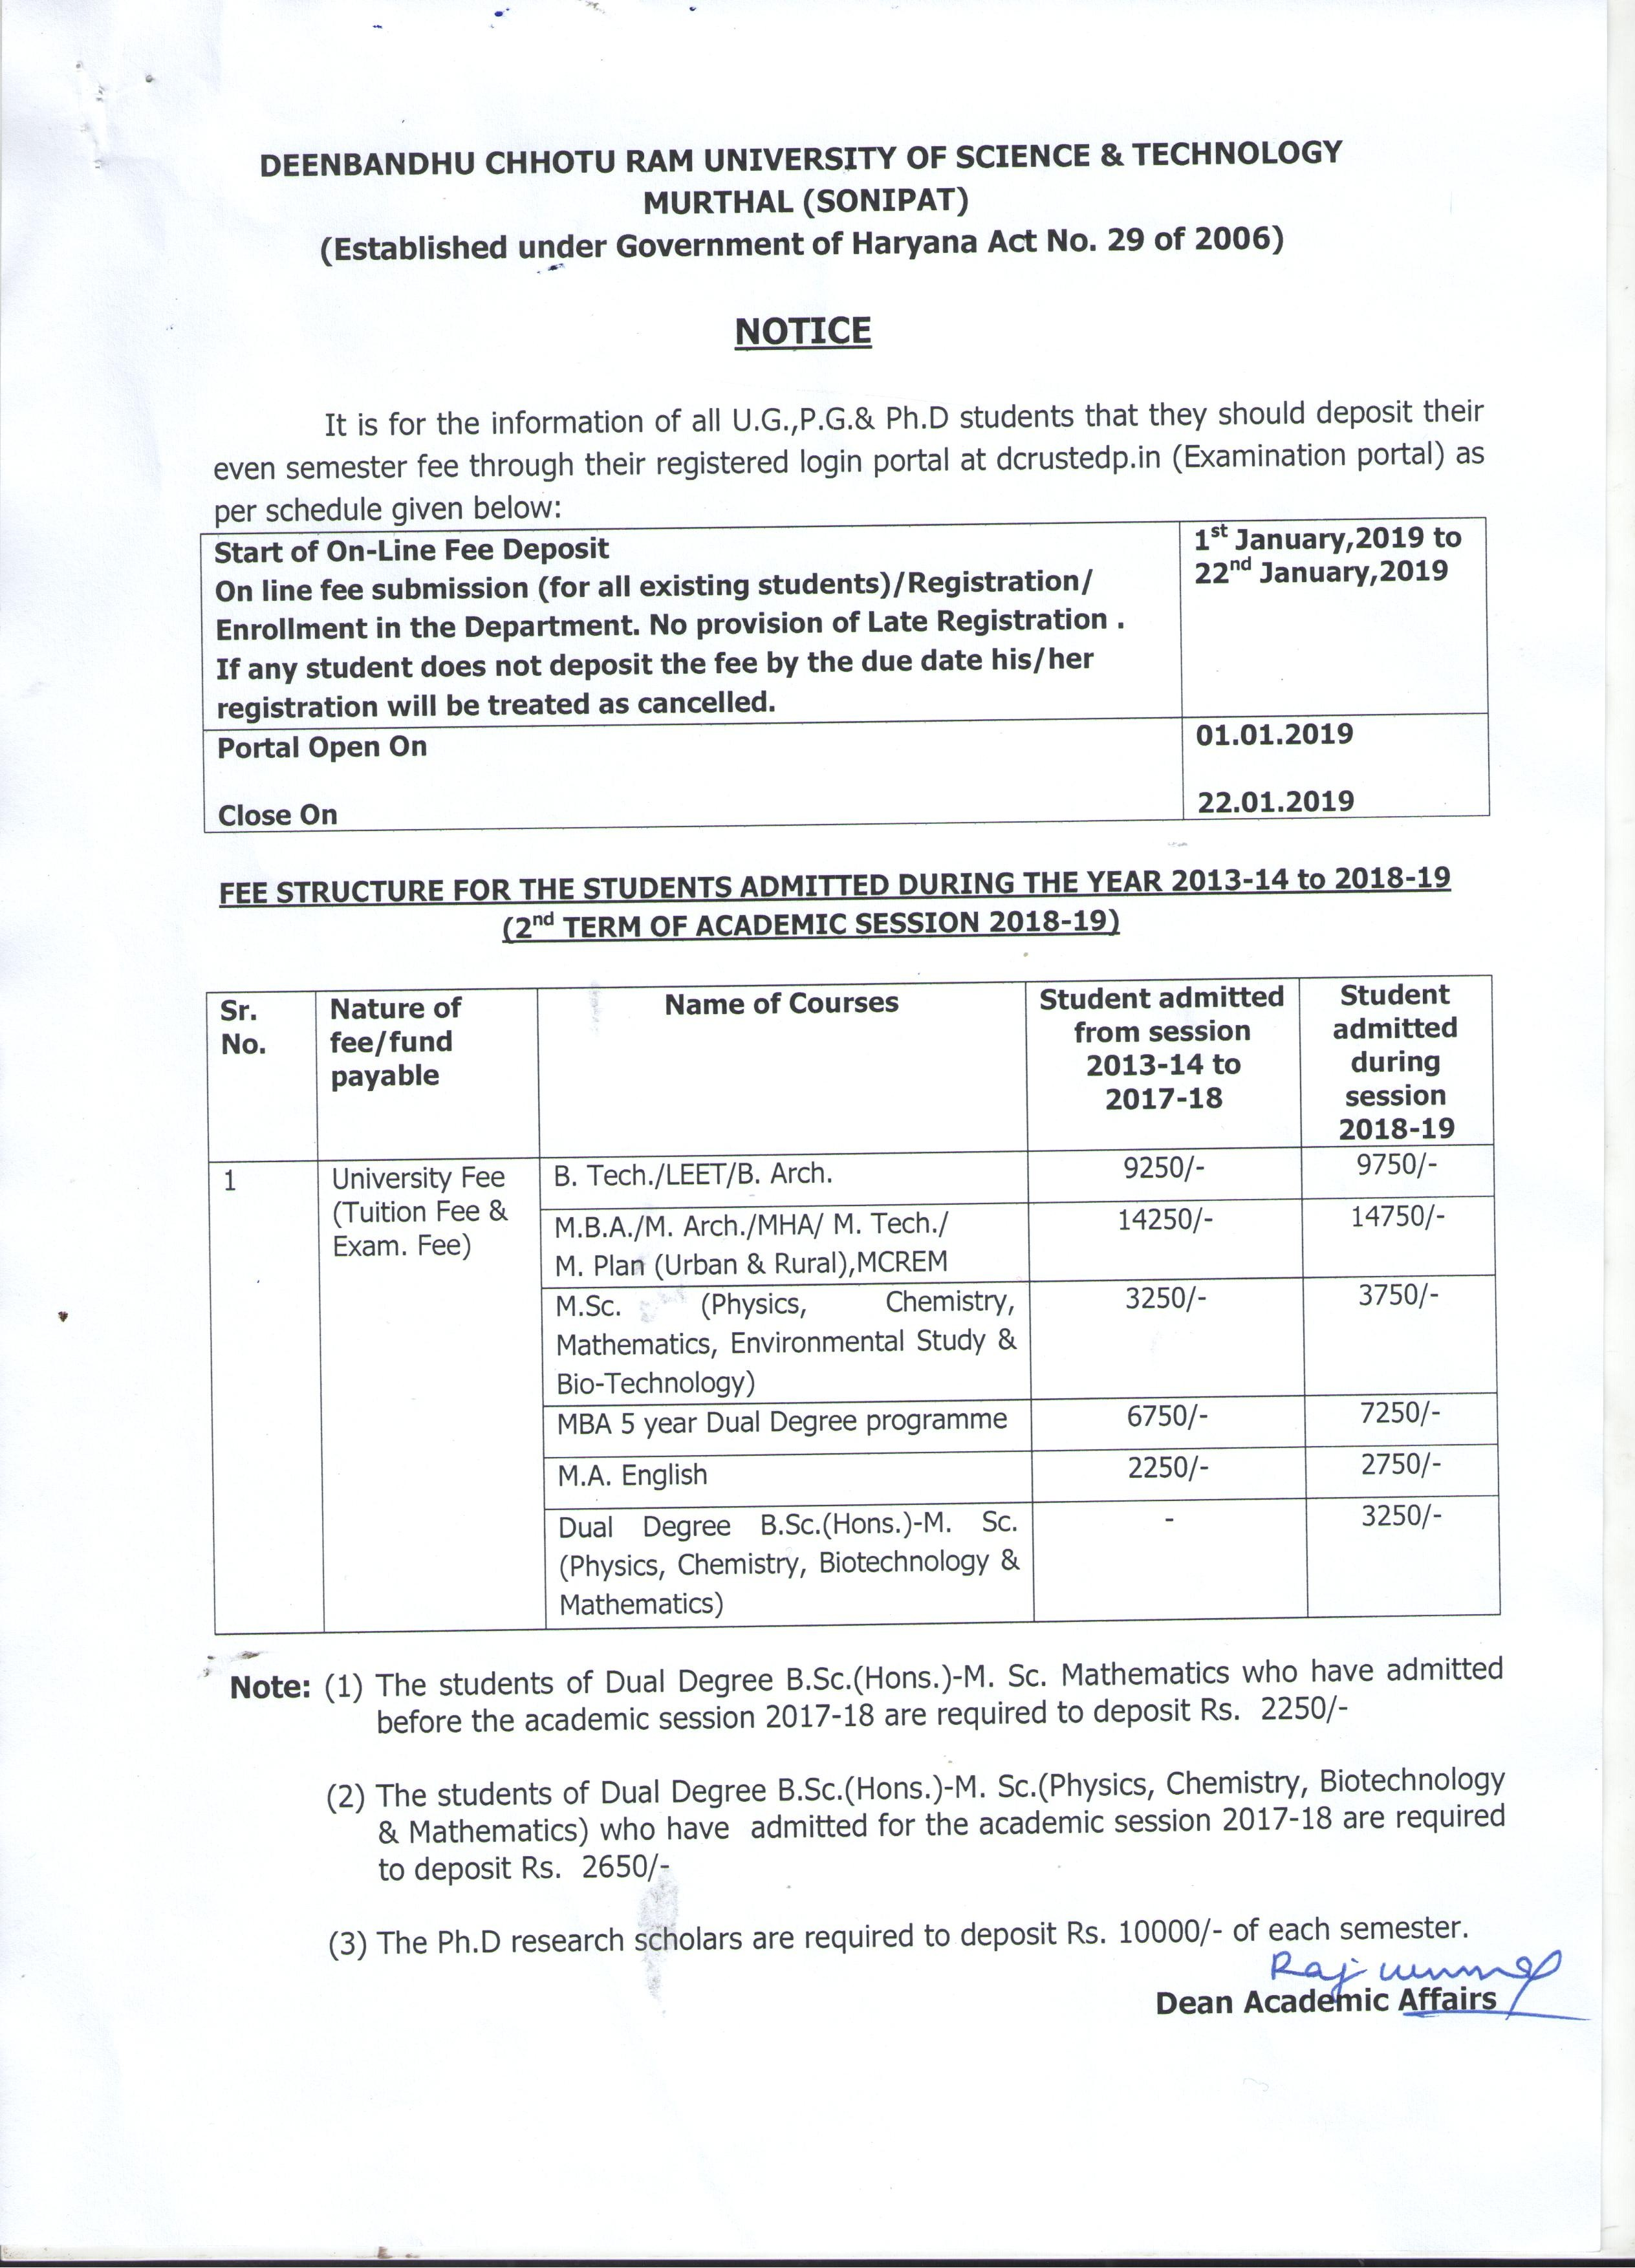 Even semester fee notice for UG PG & Ph D courses